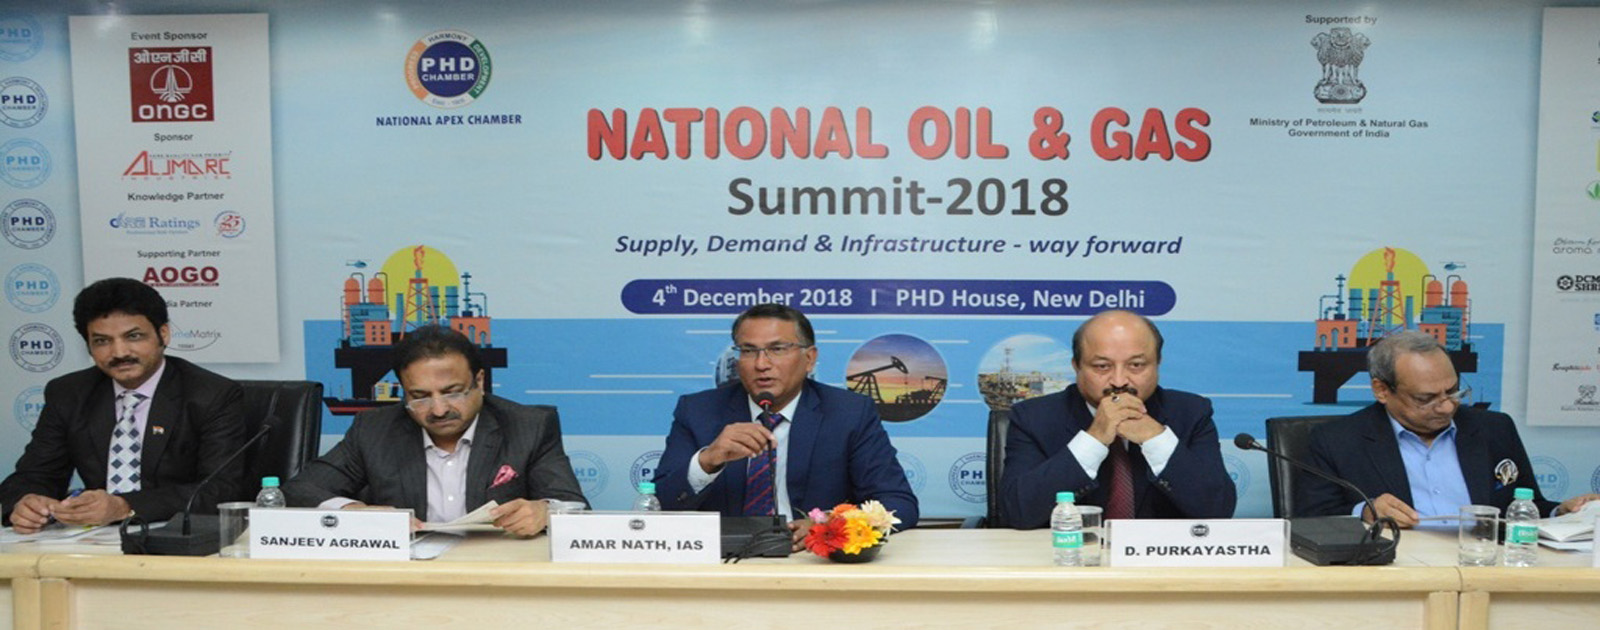 National Oil & Gas Summit – 2018